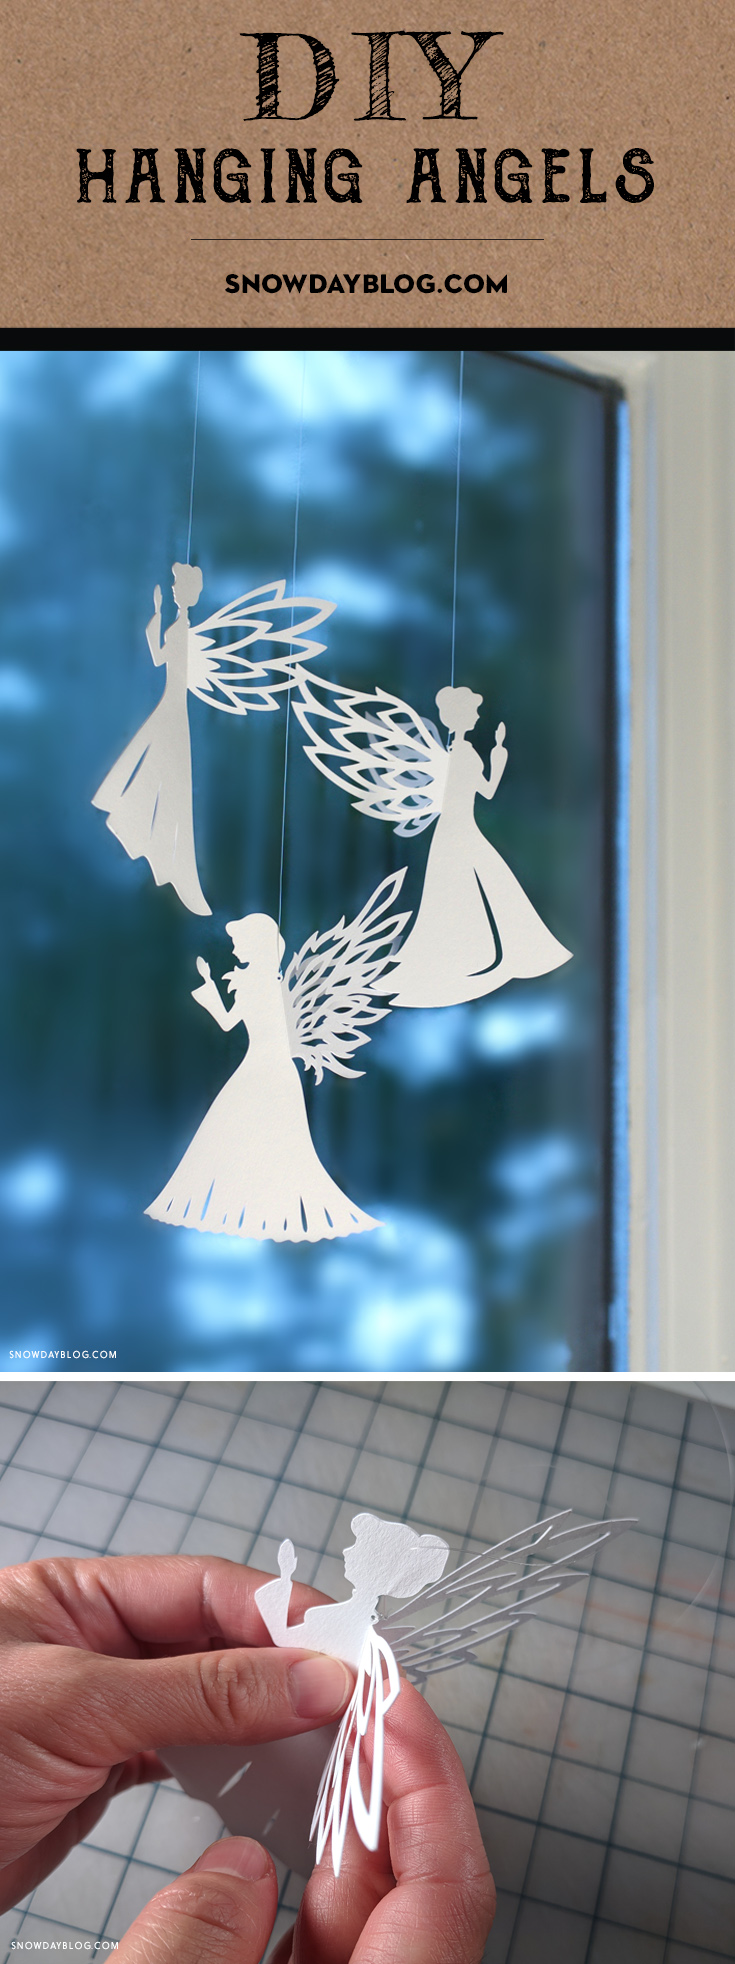 DIY Hanging Angels 1